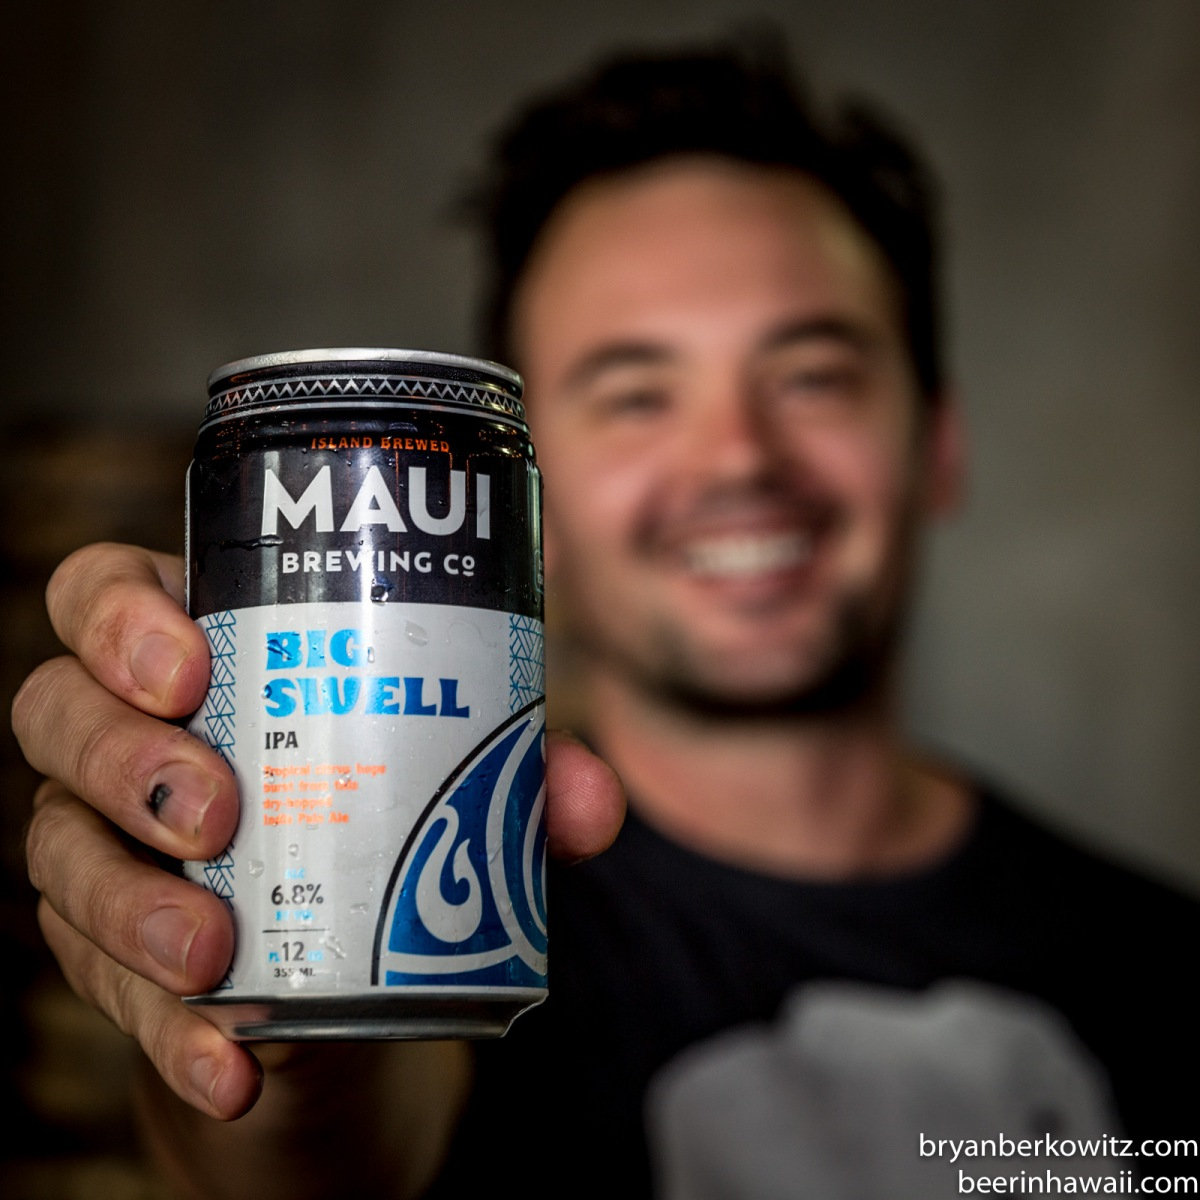 Maui Brewing Company New Can Designs Big Swell IPA